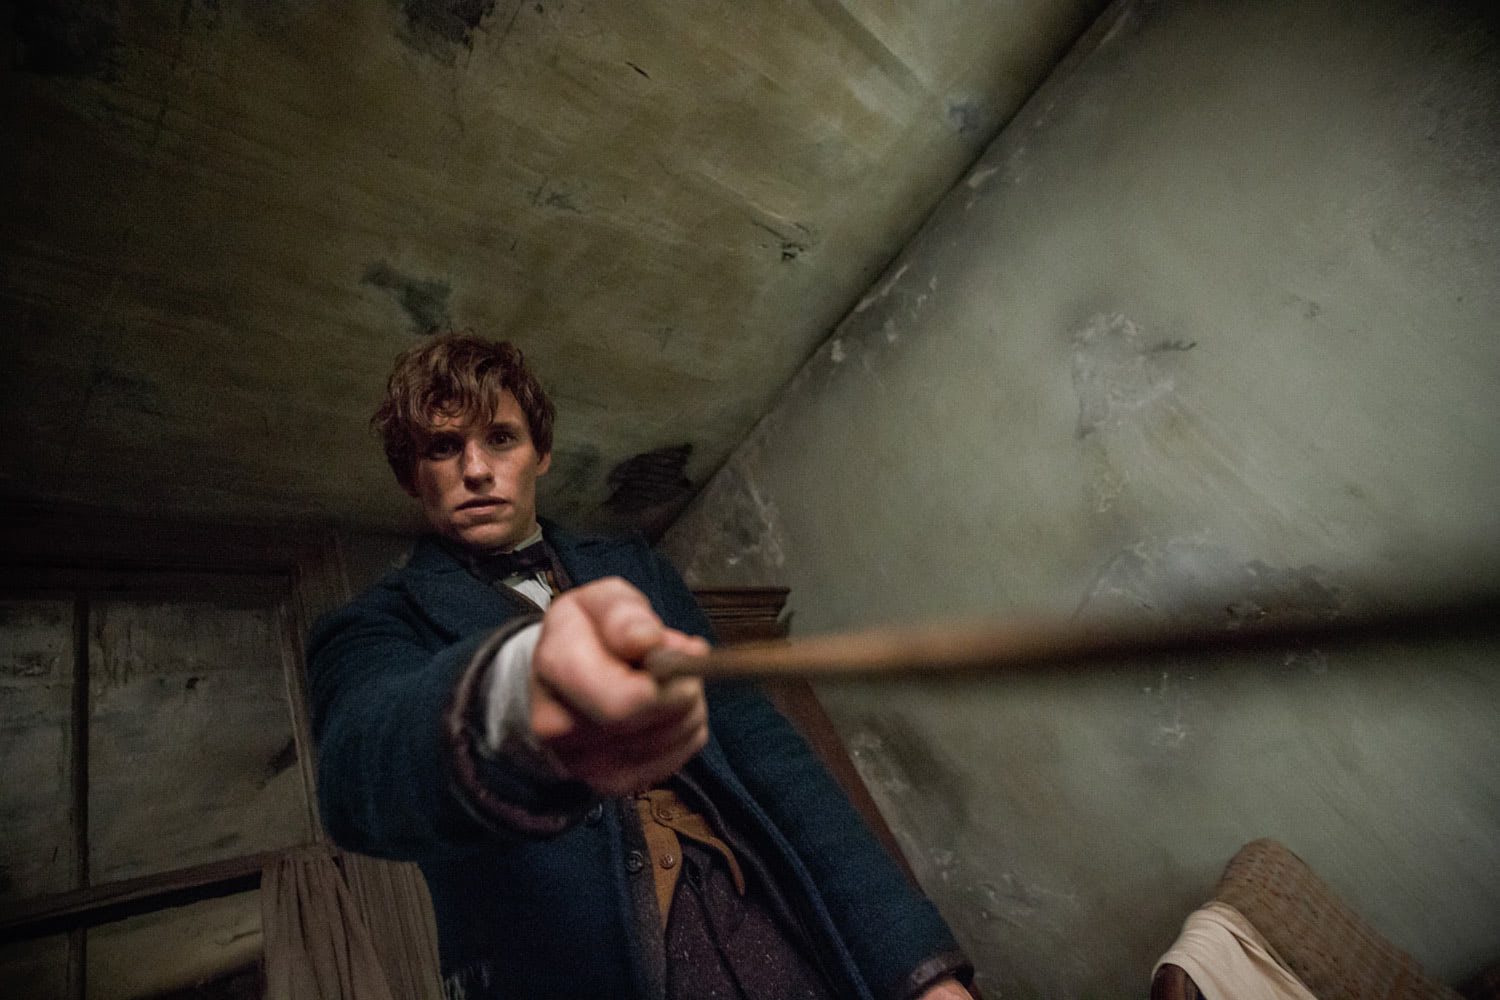 Newt points his wand